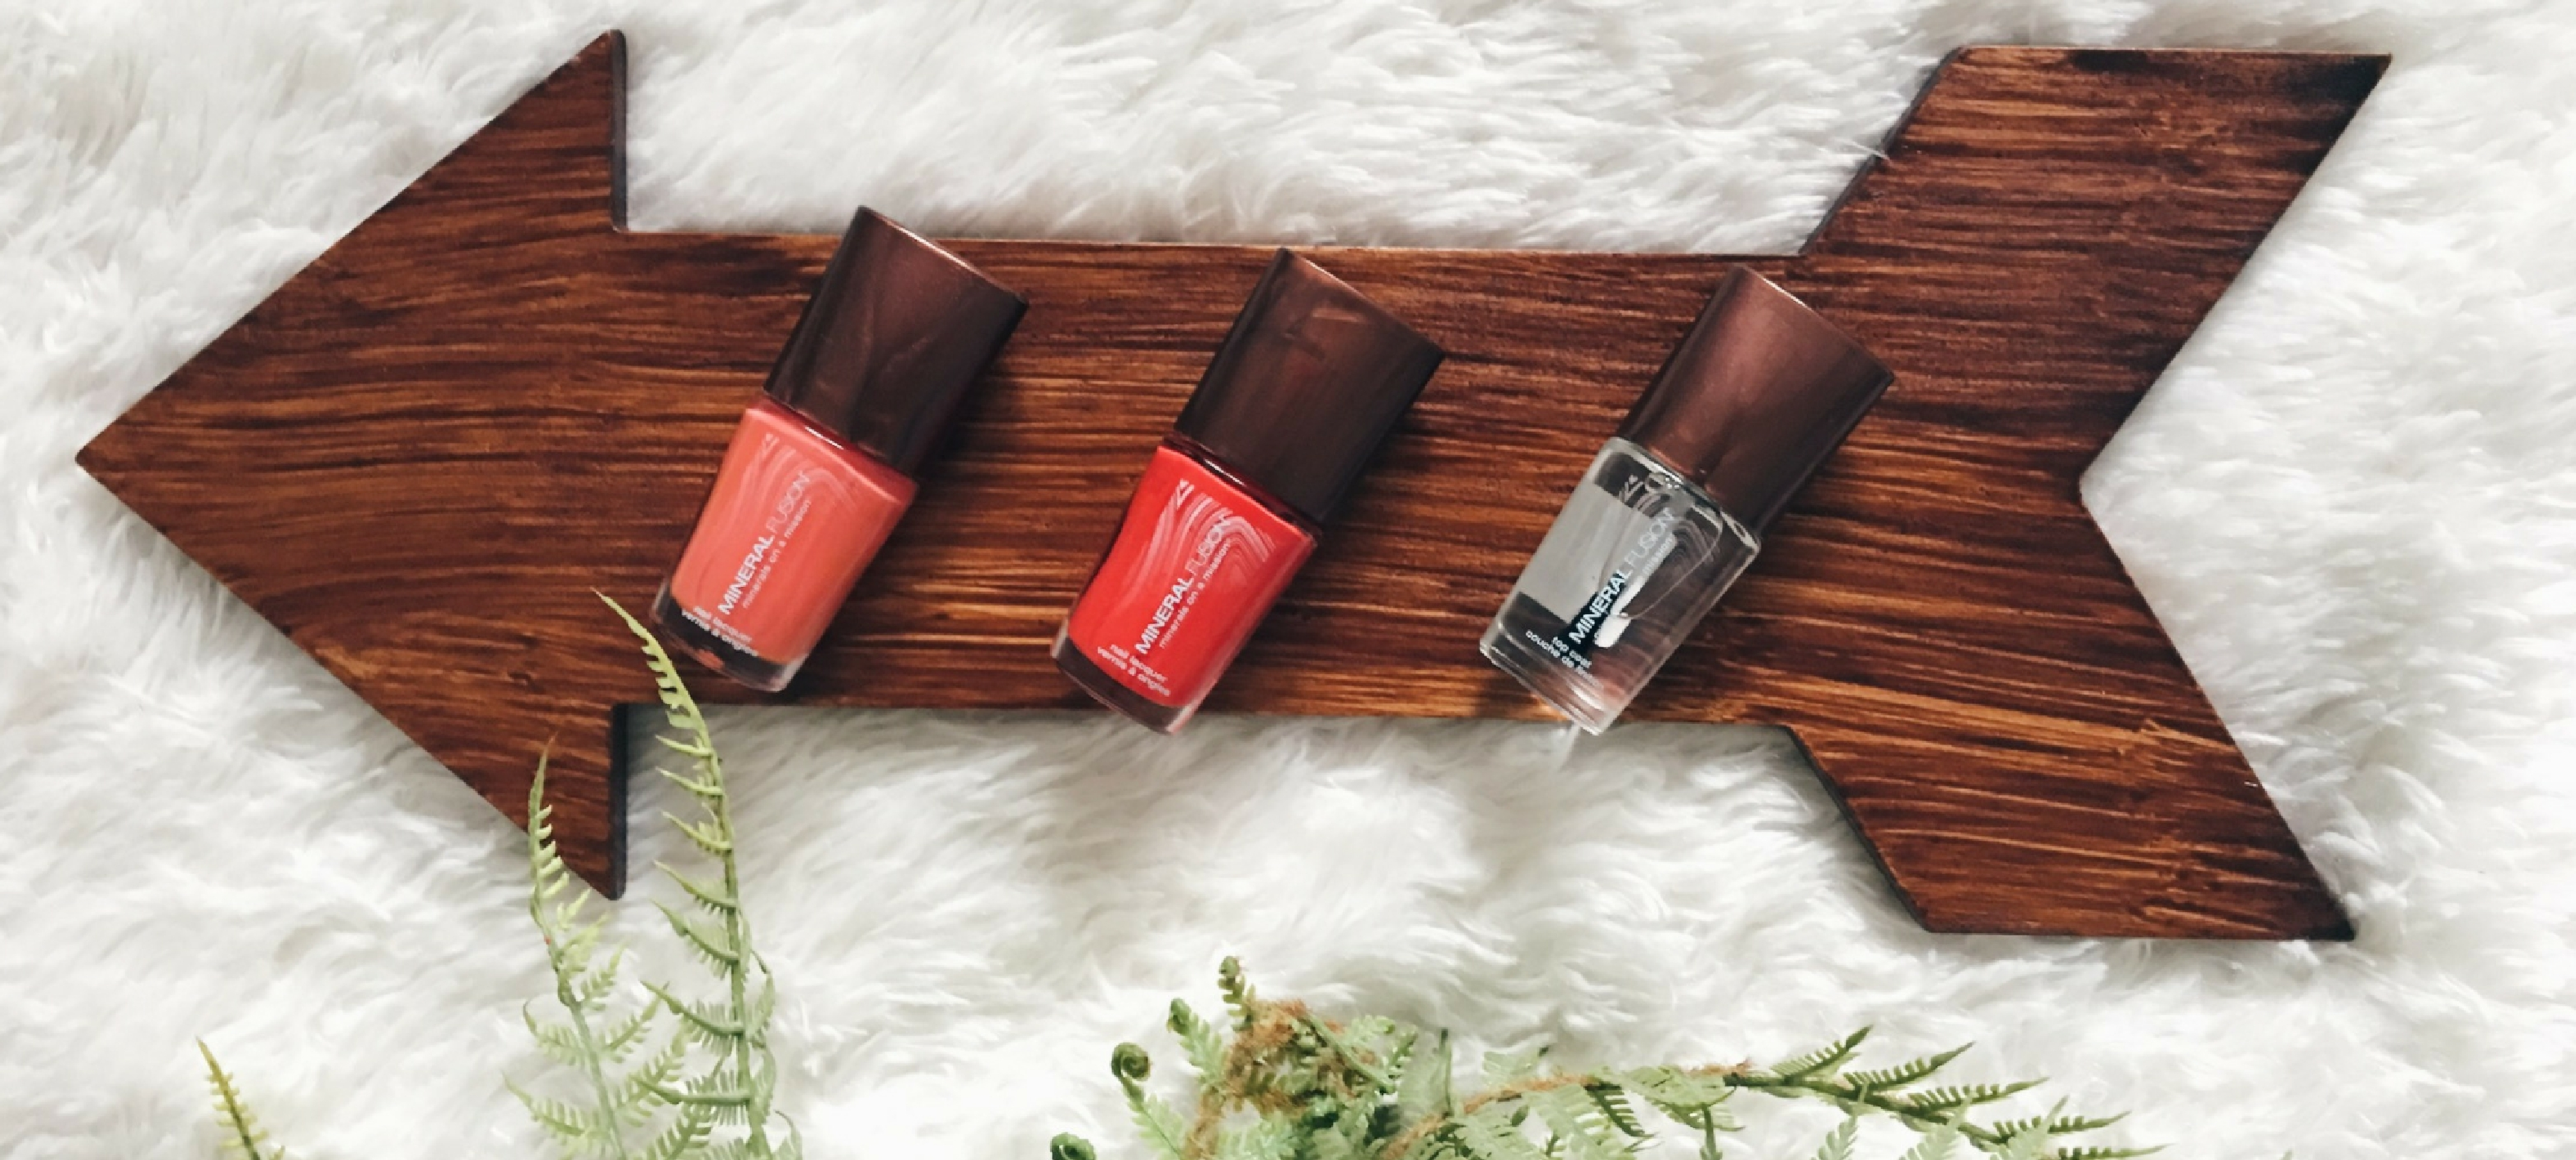 """Free"" & Non-Toxic Nail Polish: 20 Days of Sustainable Living Tips"